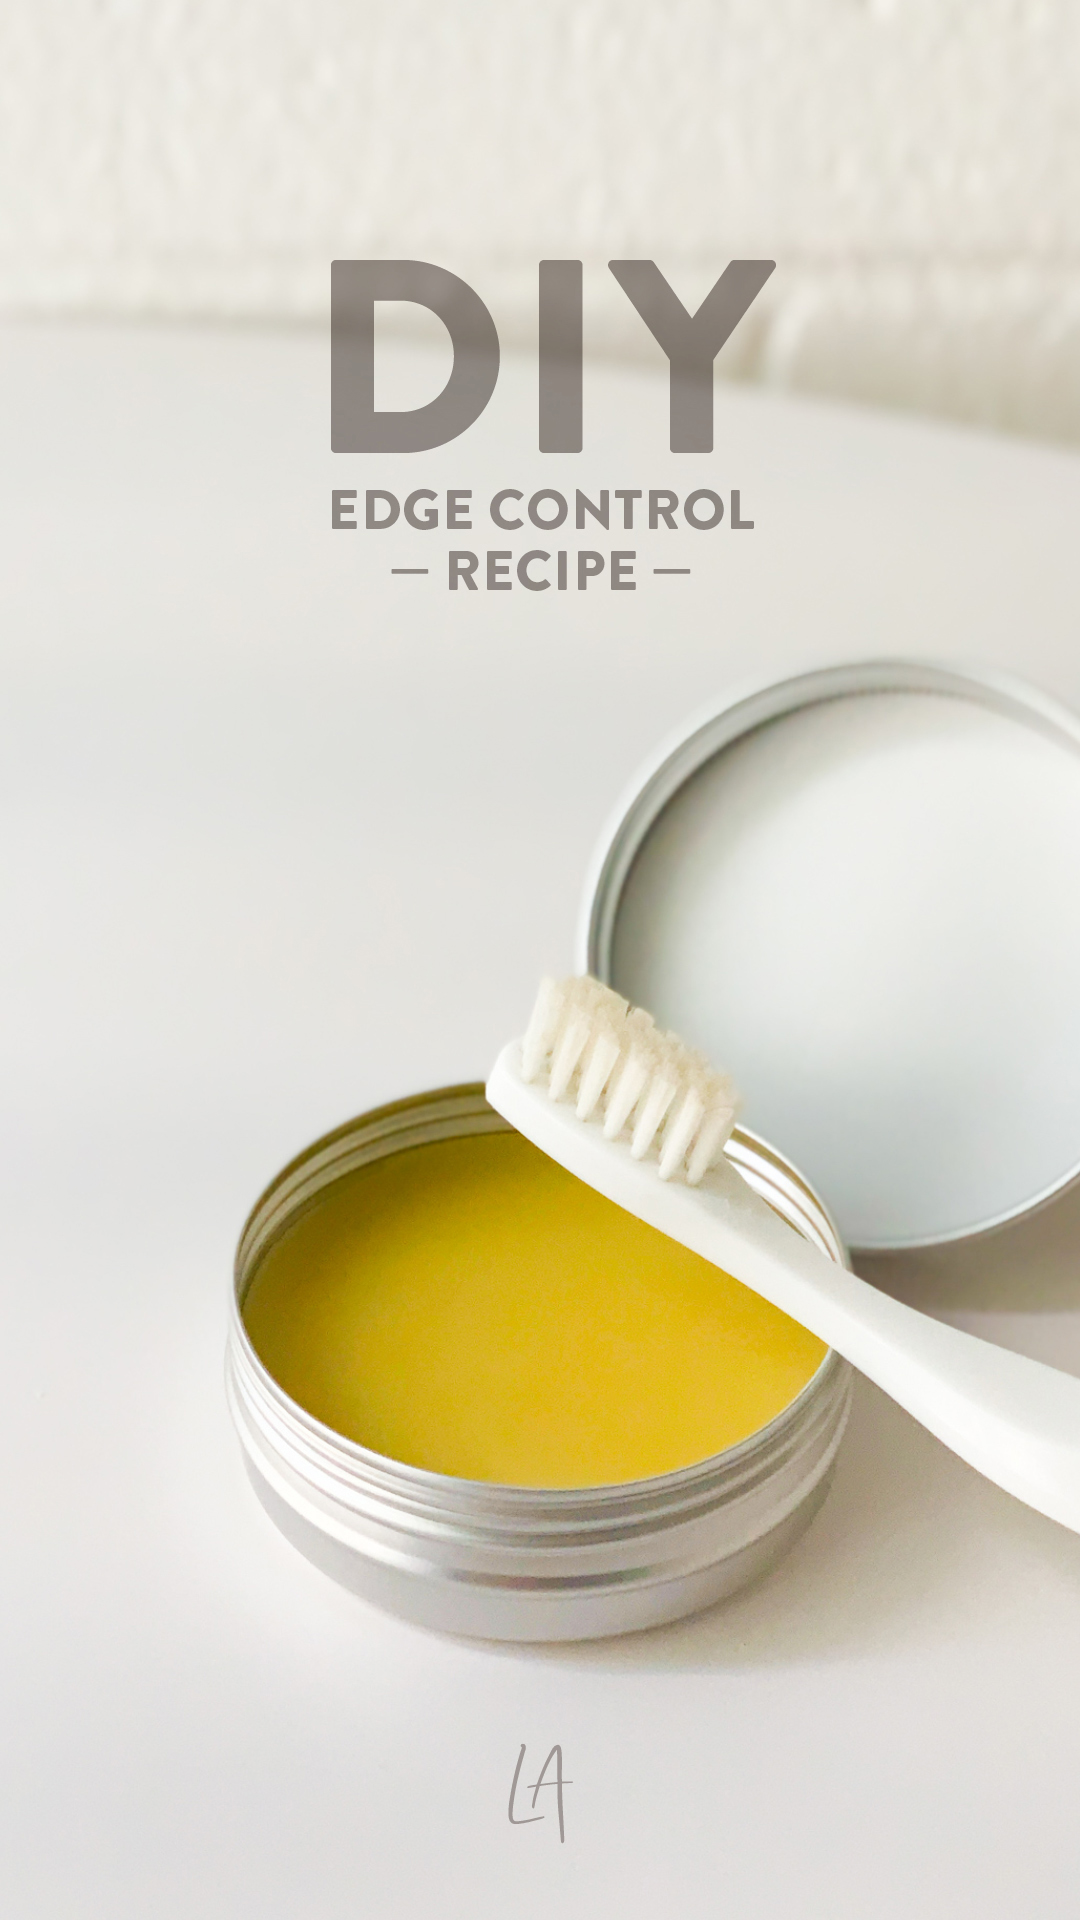 How to make your own edge control at home